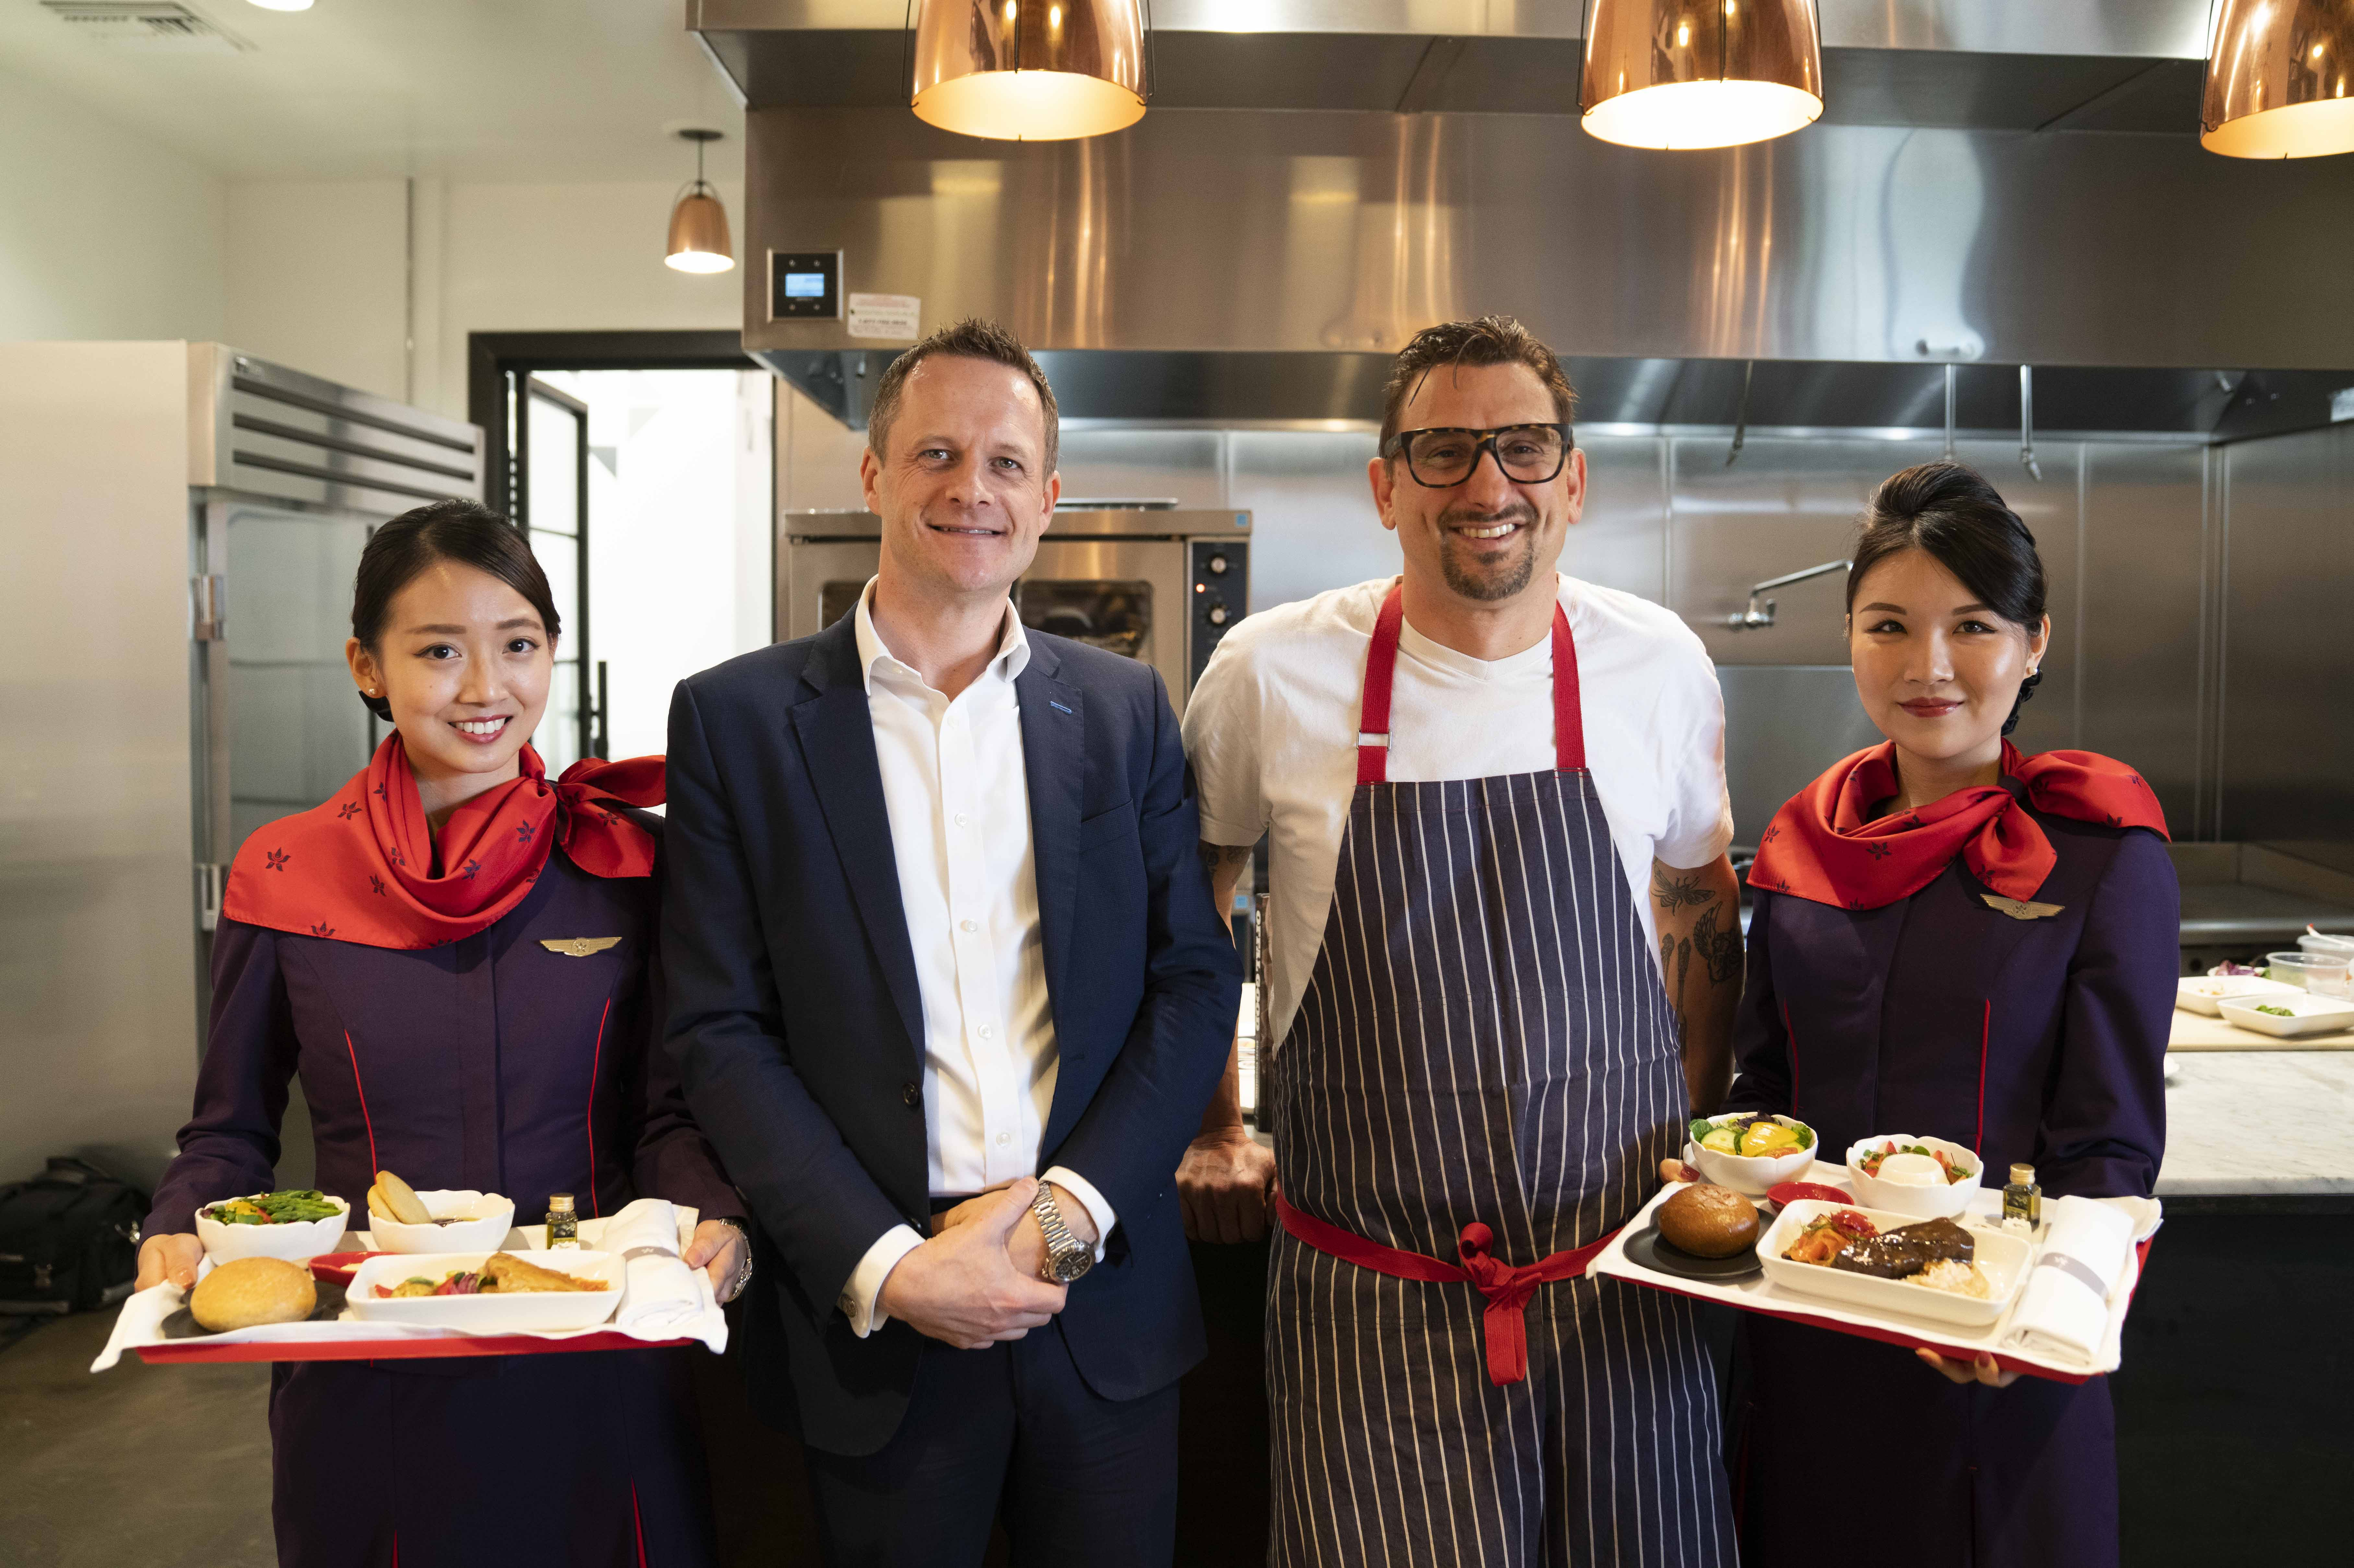 (Second from Left) Mr Chris Birt, Hong Kong Airlines Director of Service Delivery, and Chef Chris Cosentino